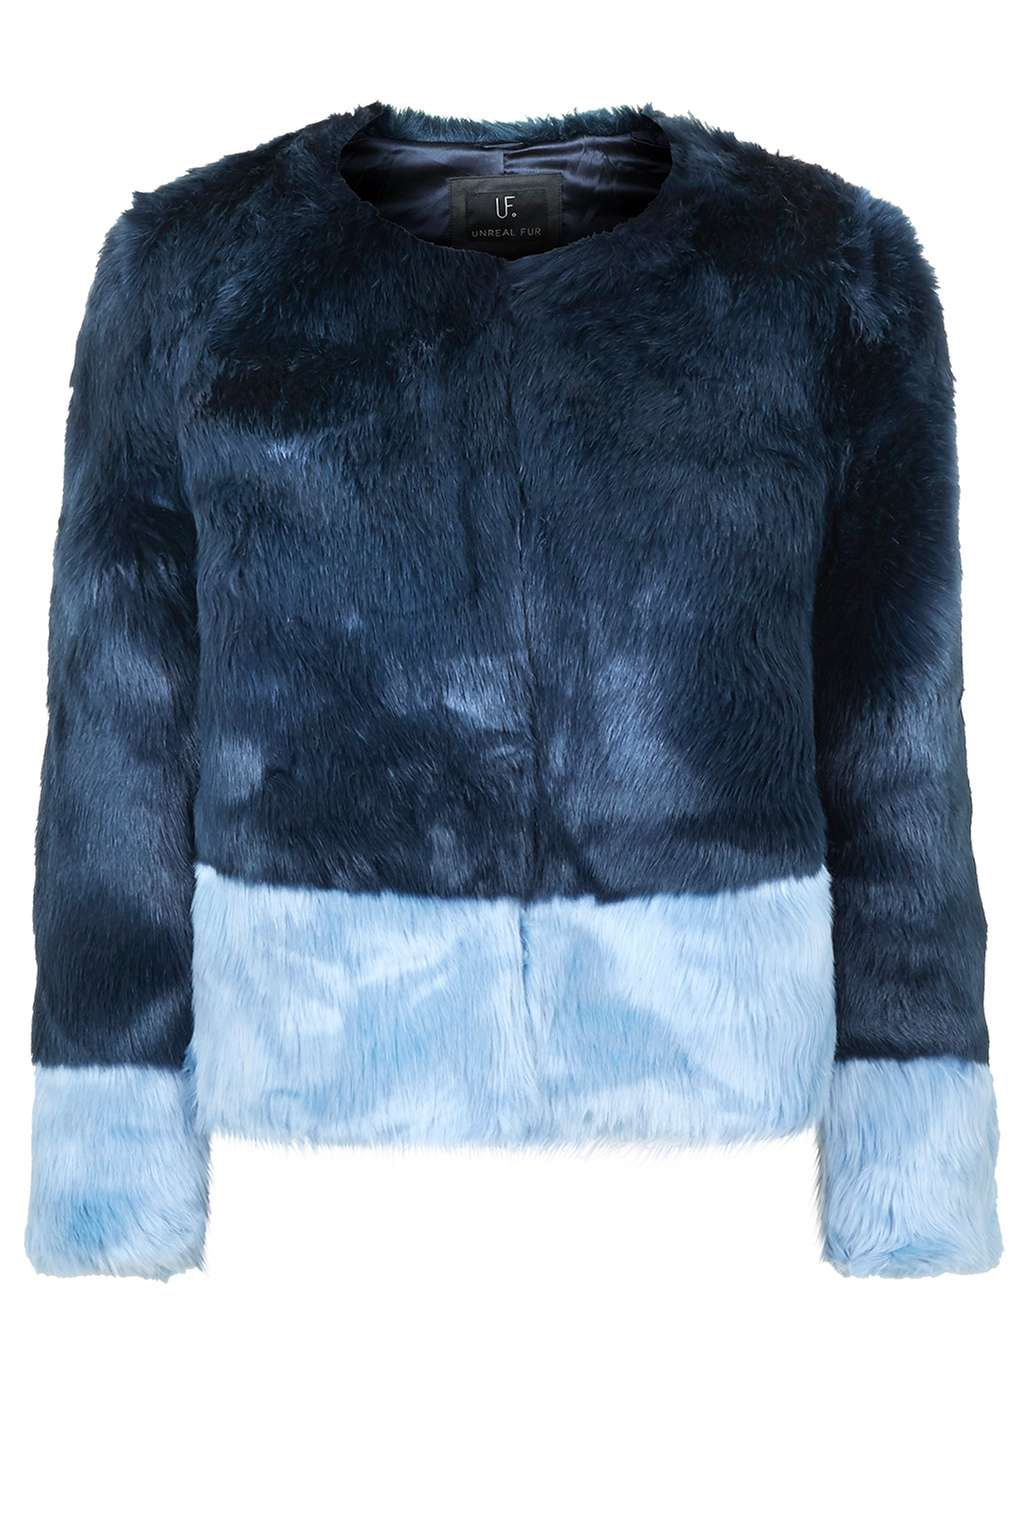 UNREAL FUR BLUE TWO-TONED JACKET